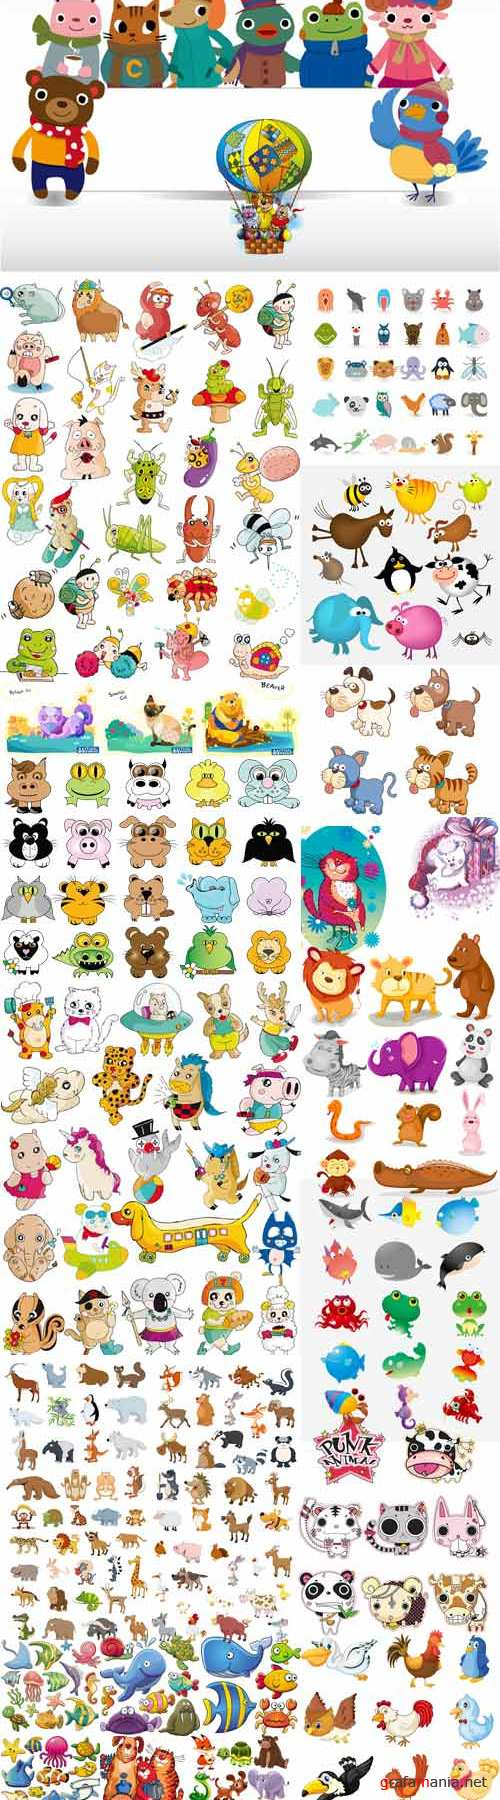 Cartoon funny animals vector